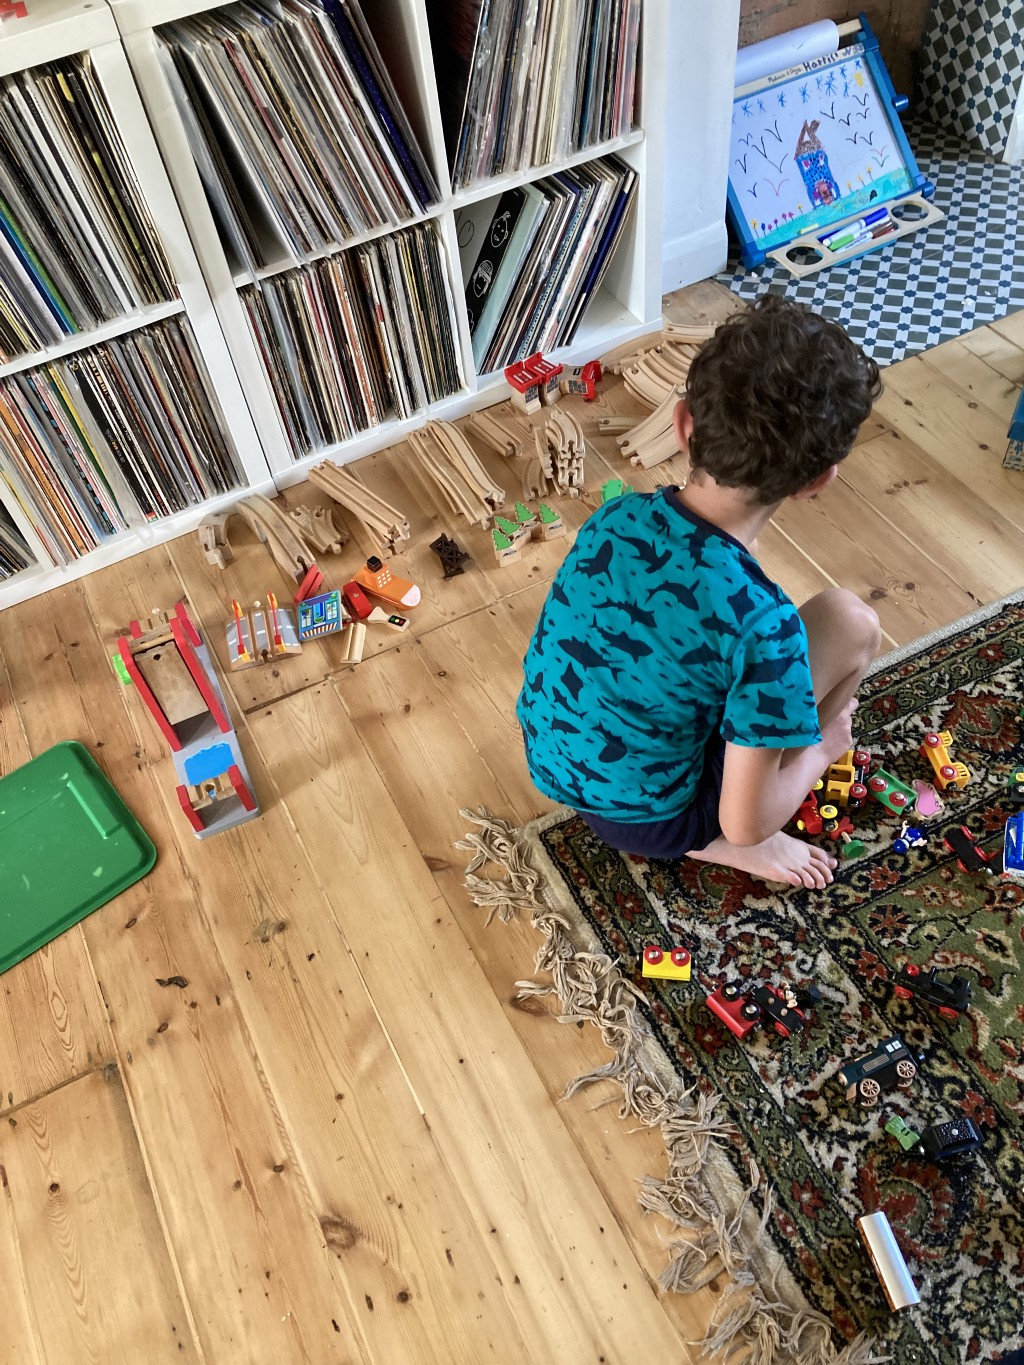 A young boy sorts out his train track and cars, methodically